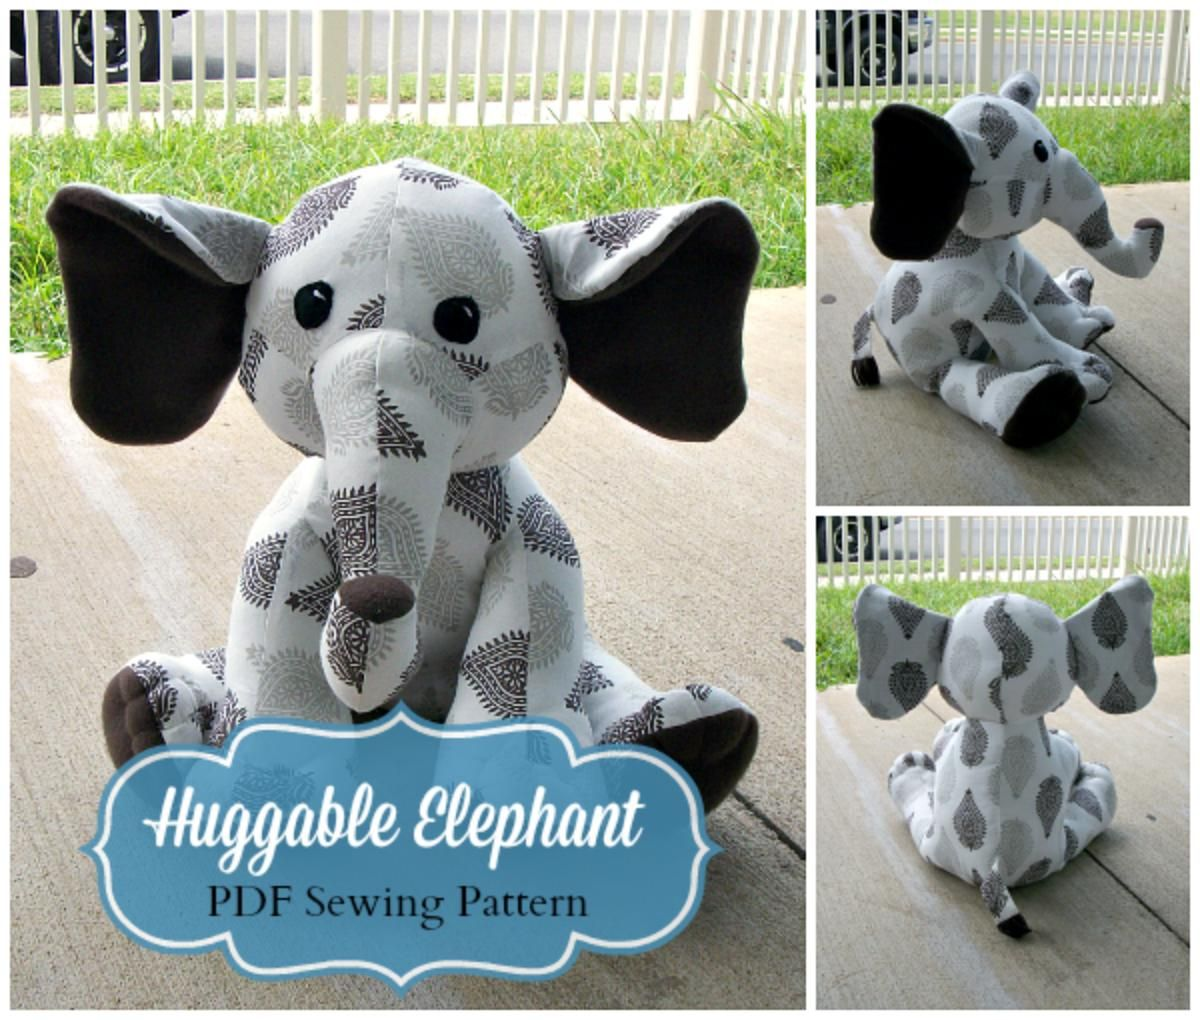 Huggable elephant sewing pattern plush sewing patterns and huggable elephant sewing pattern jeuxipadfo Gallery